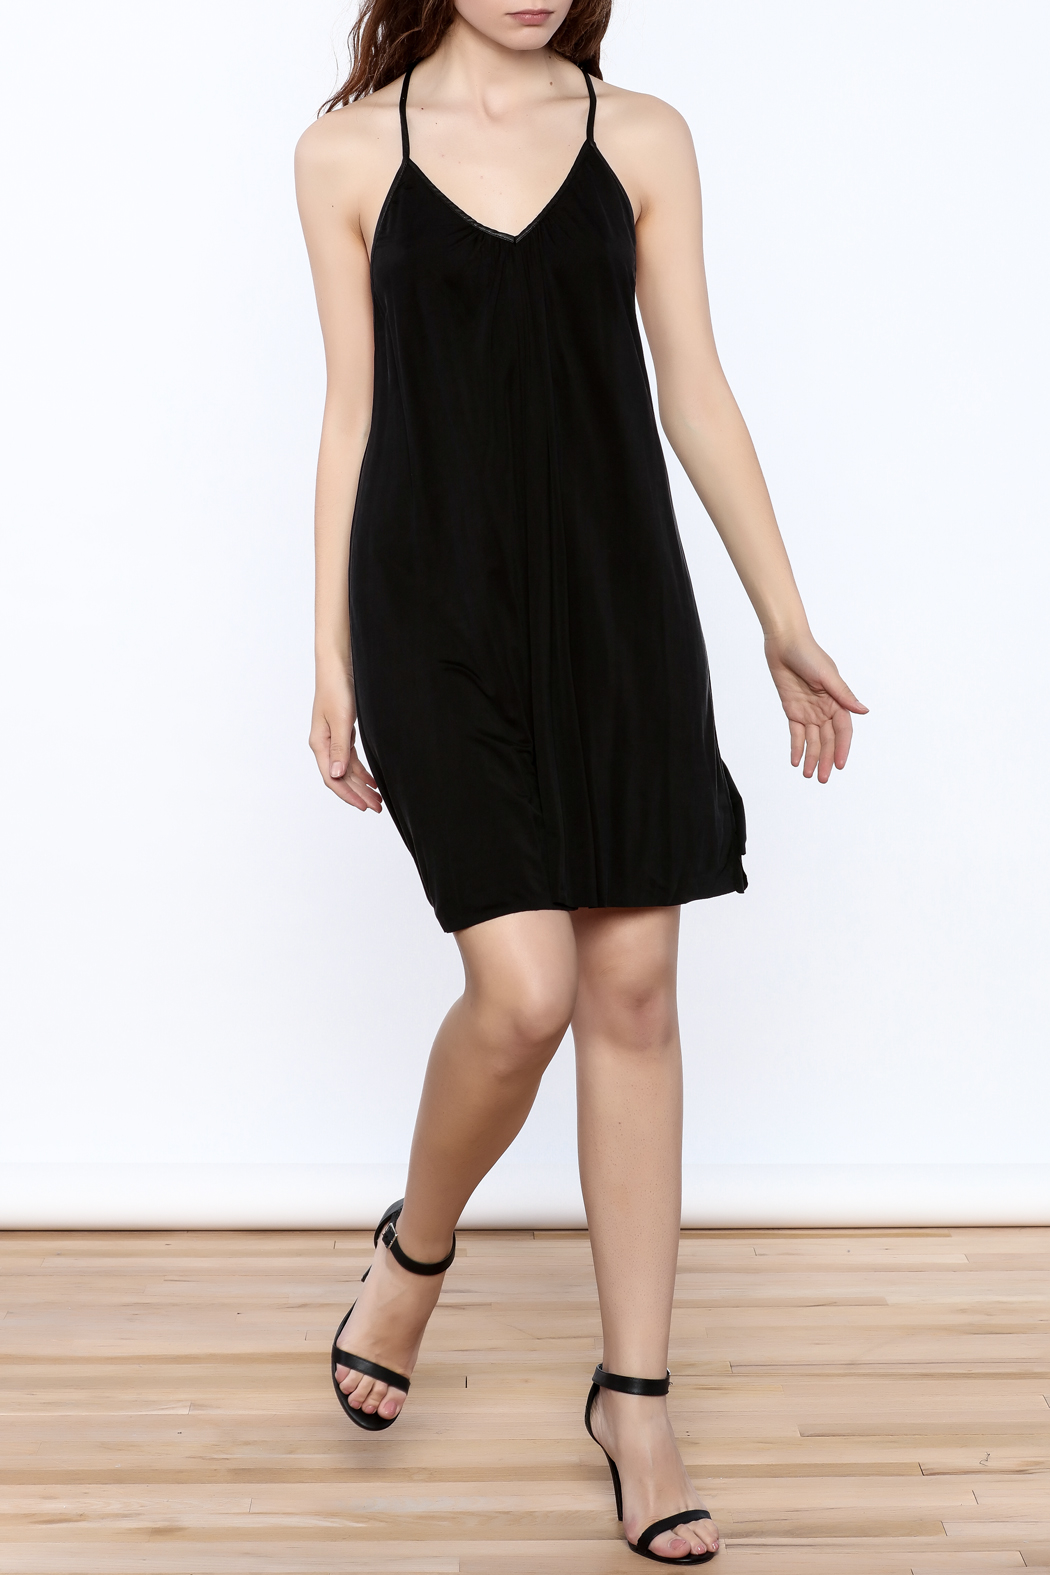 Mustard Seed Casual Black Sleeveless Dress - Front Full Image